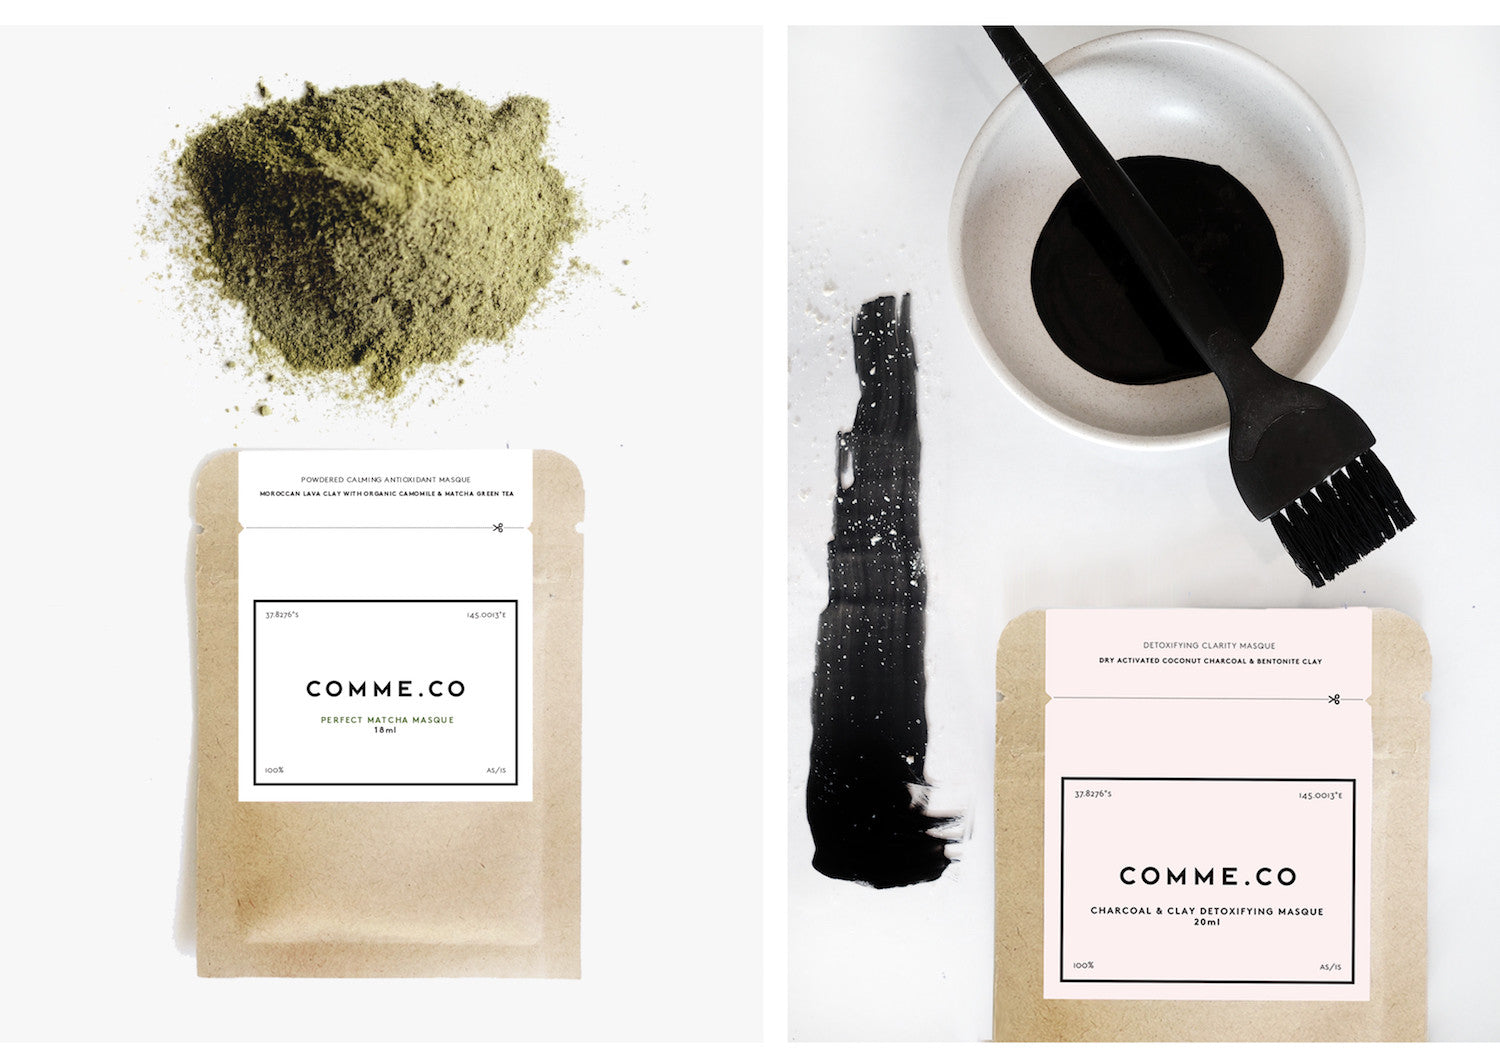 Comme.co - Charcoal Products - NZ